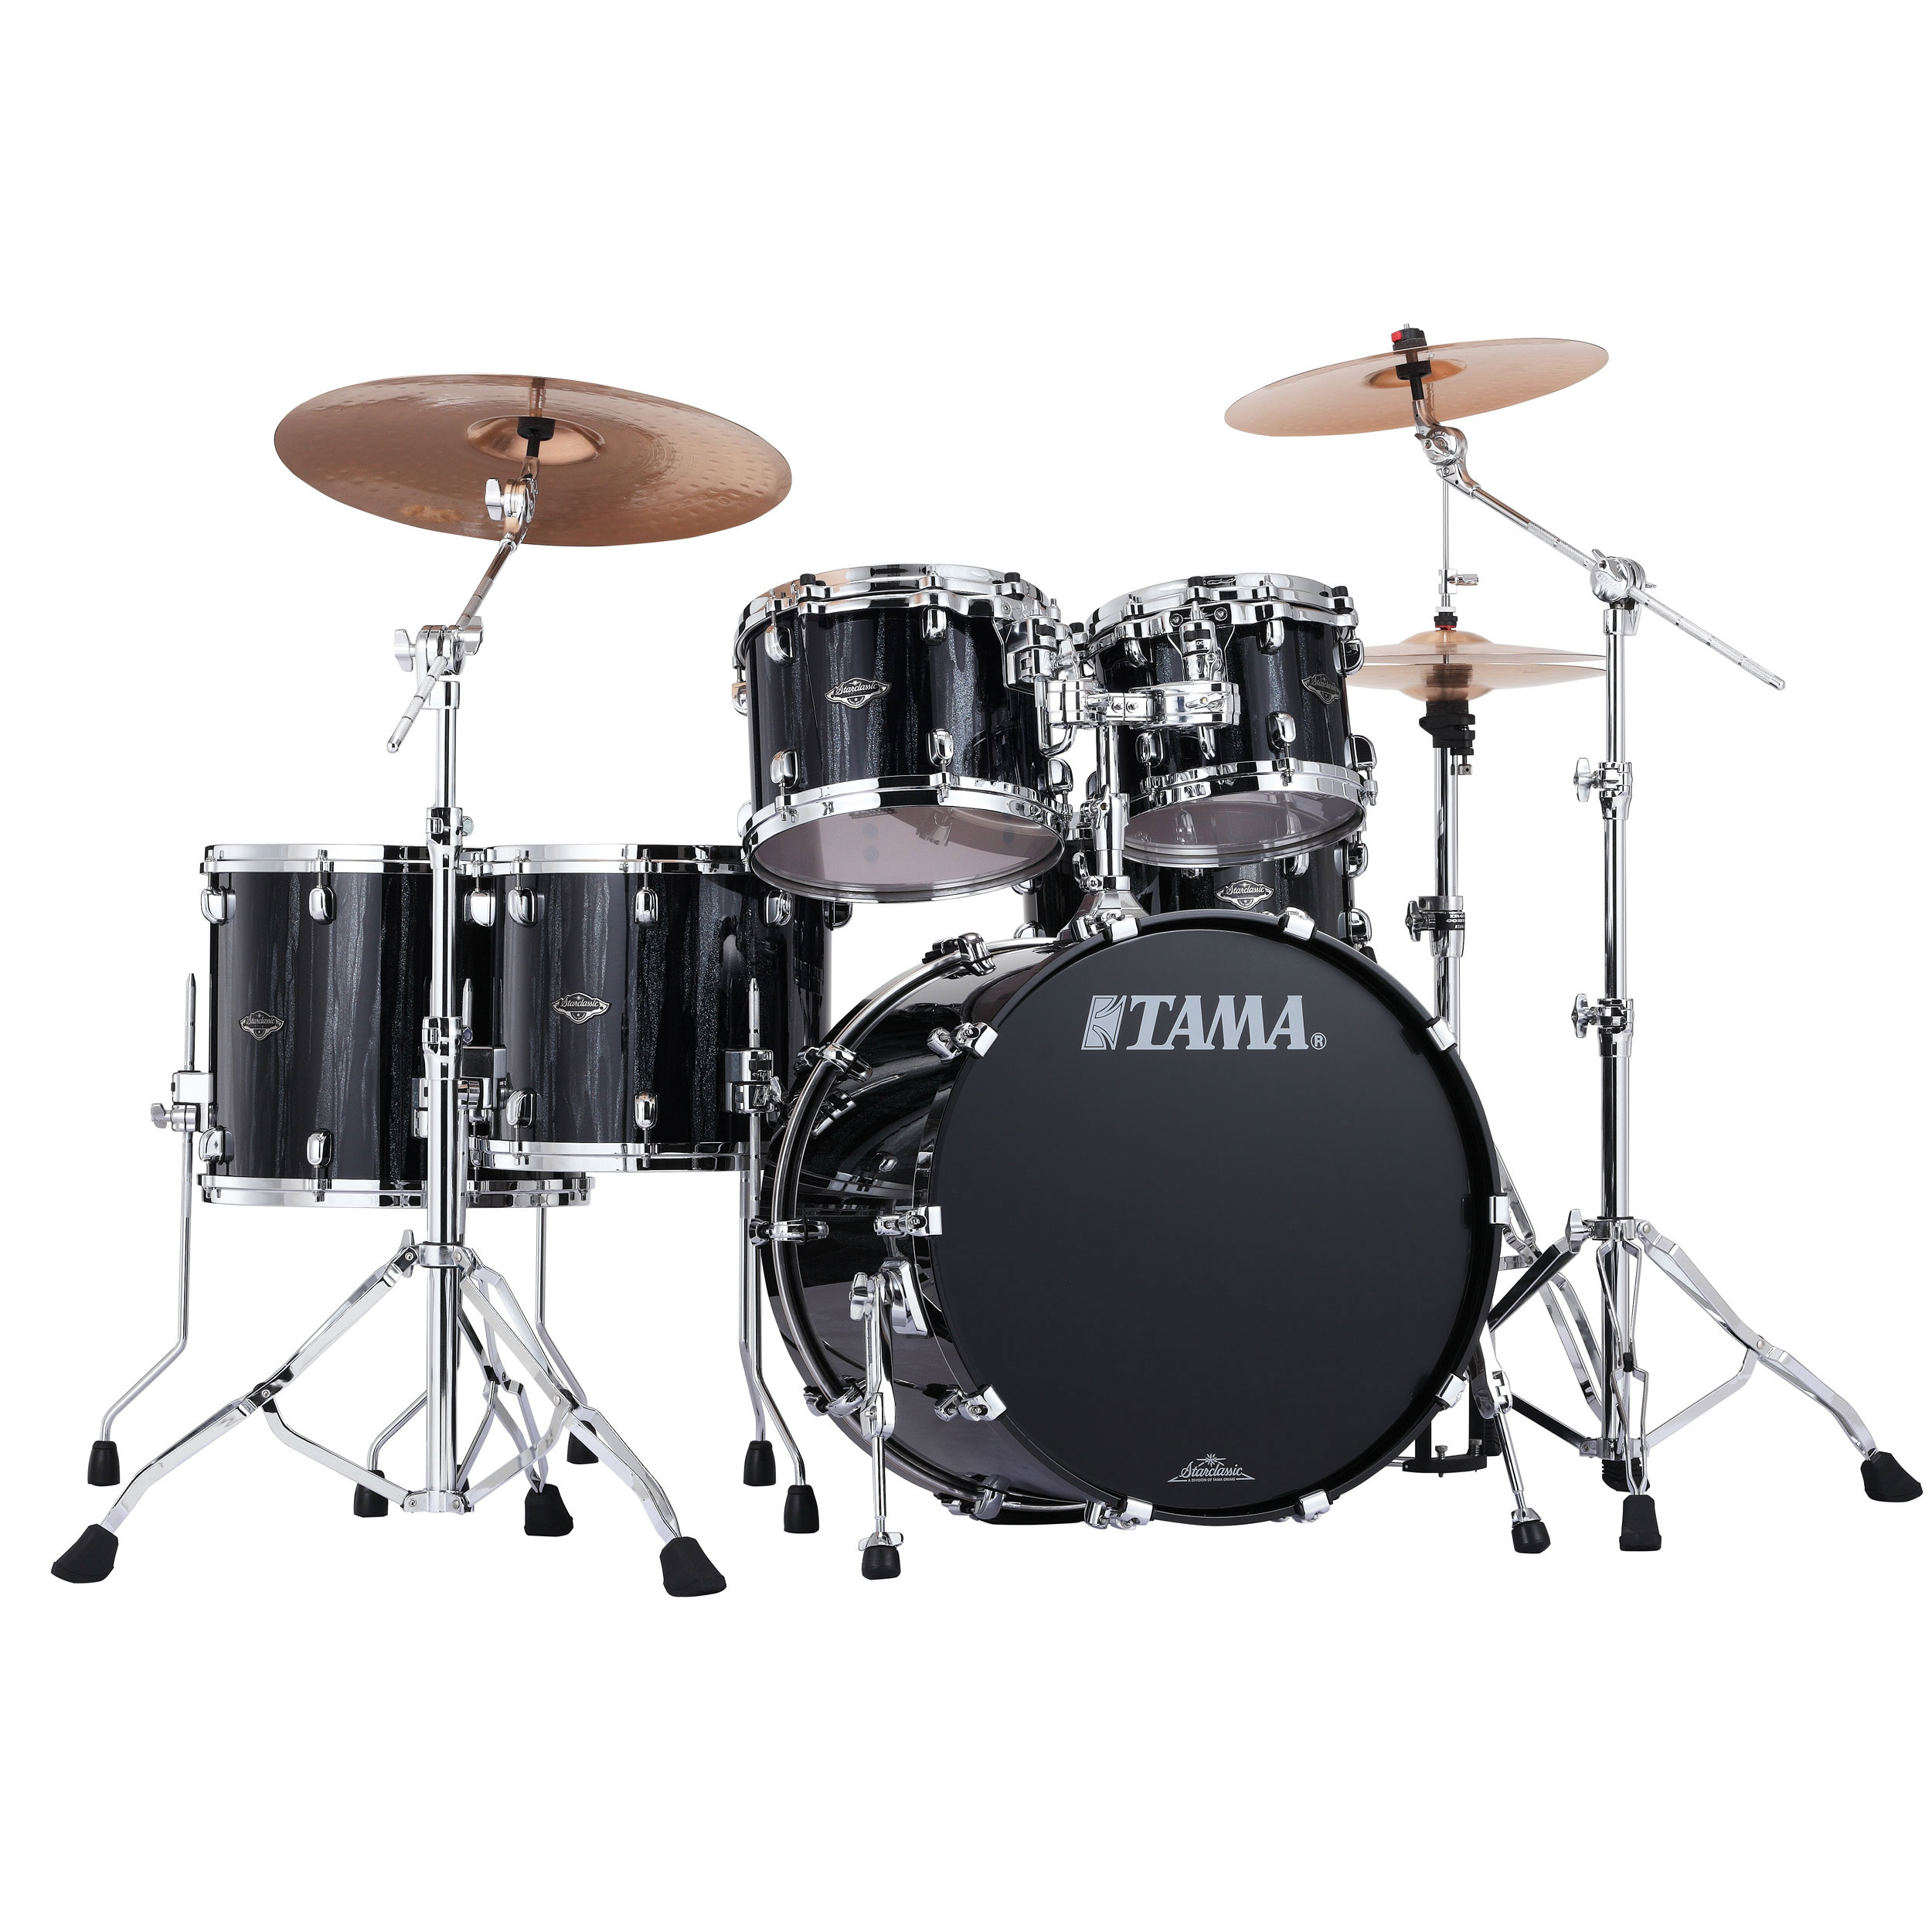 "Tama Starclassic Performer B/B 5-Piece Drum Set Shell Pack (22"" Bass, 10/12/14/16"" Toms) in Sparkle Finish"